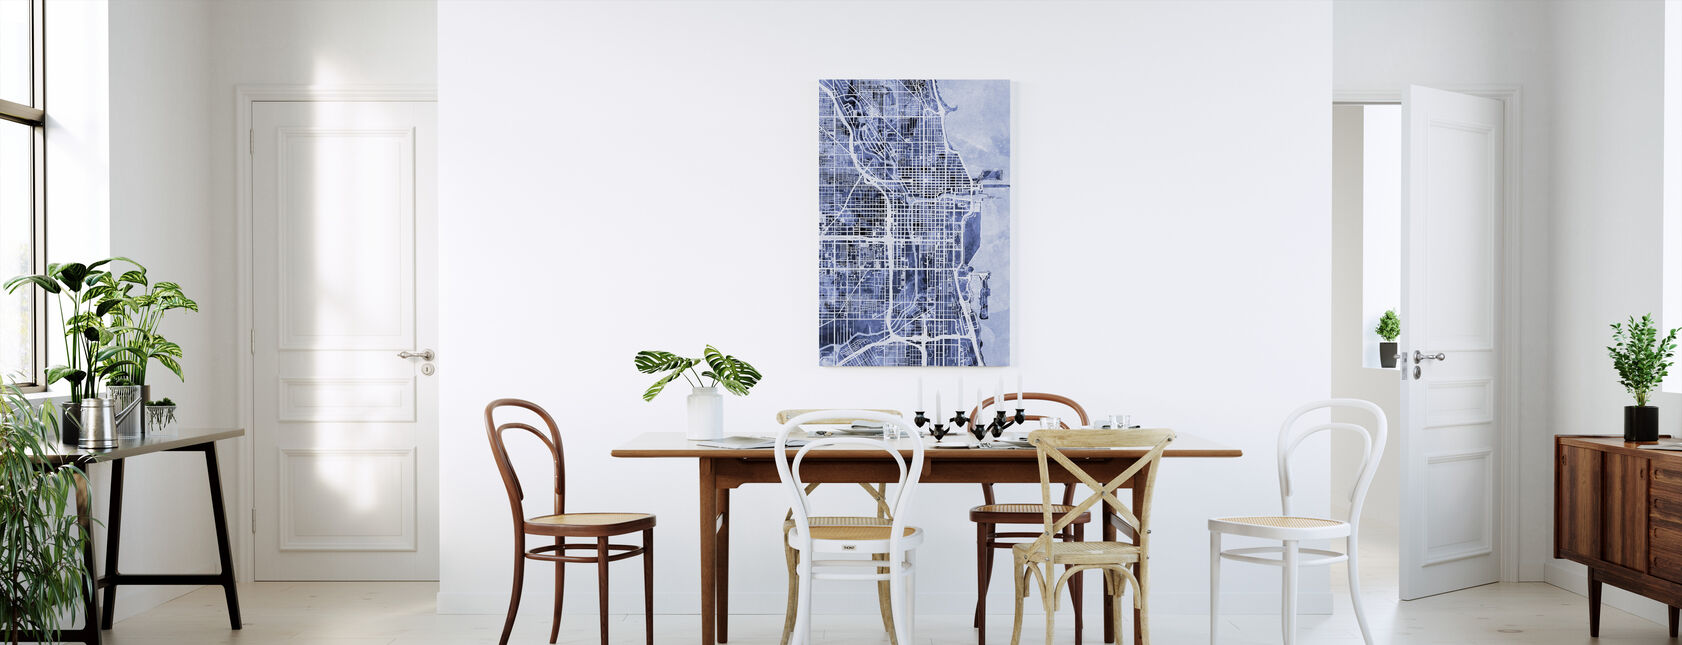 Chicago City Street Map - Canvas print - Kitchen